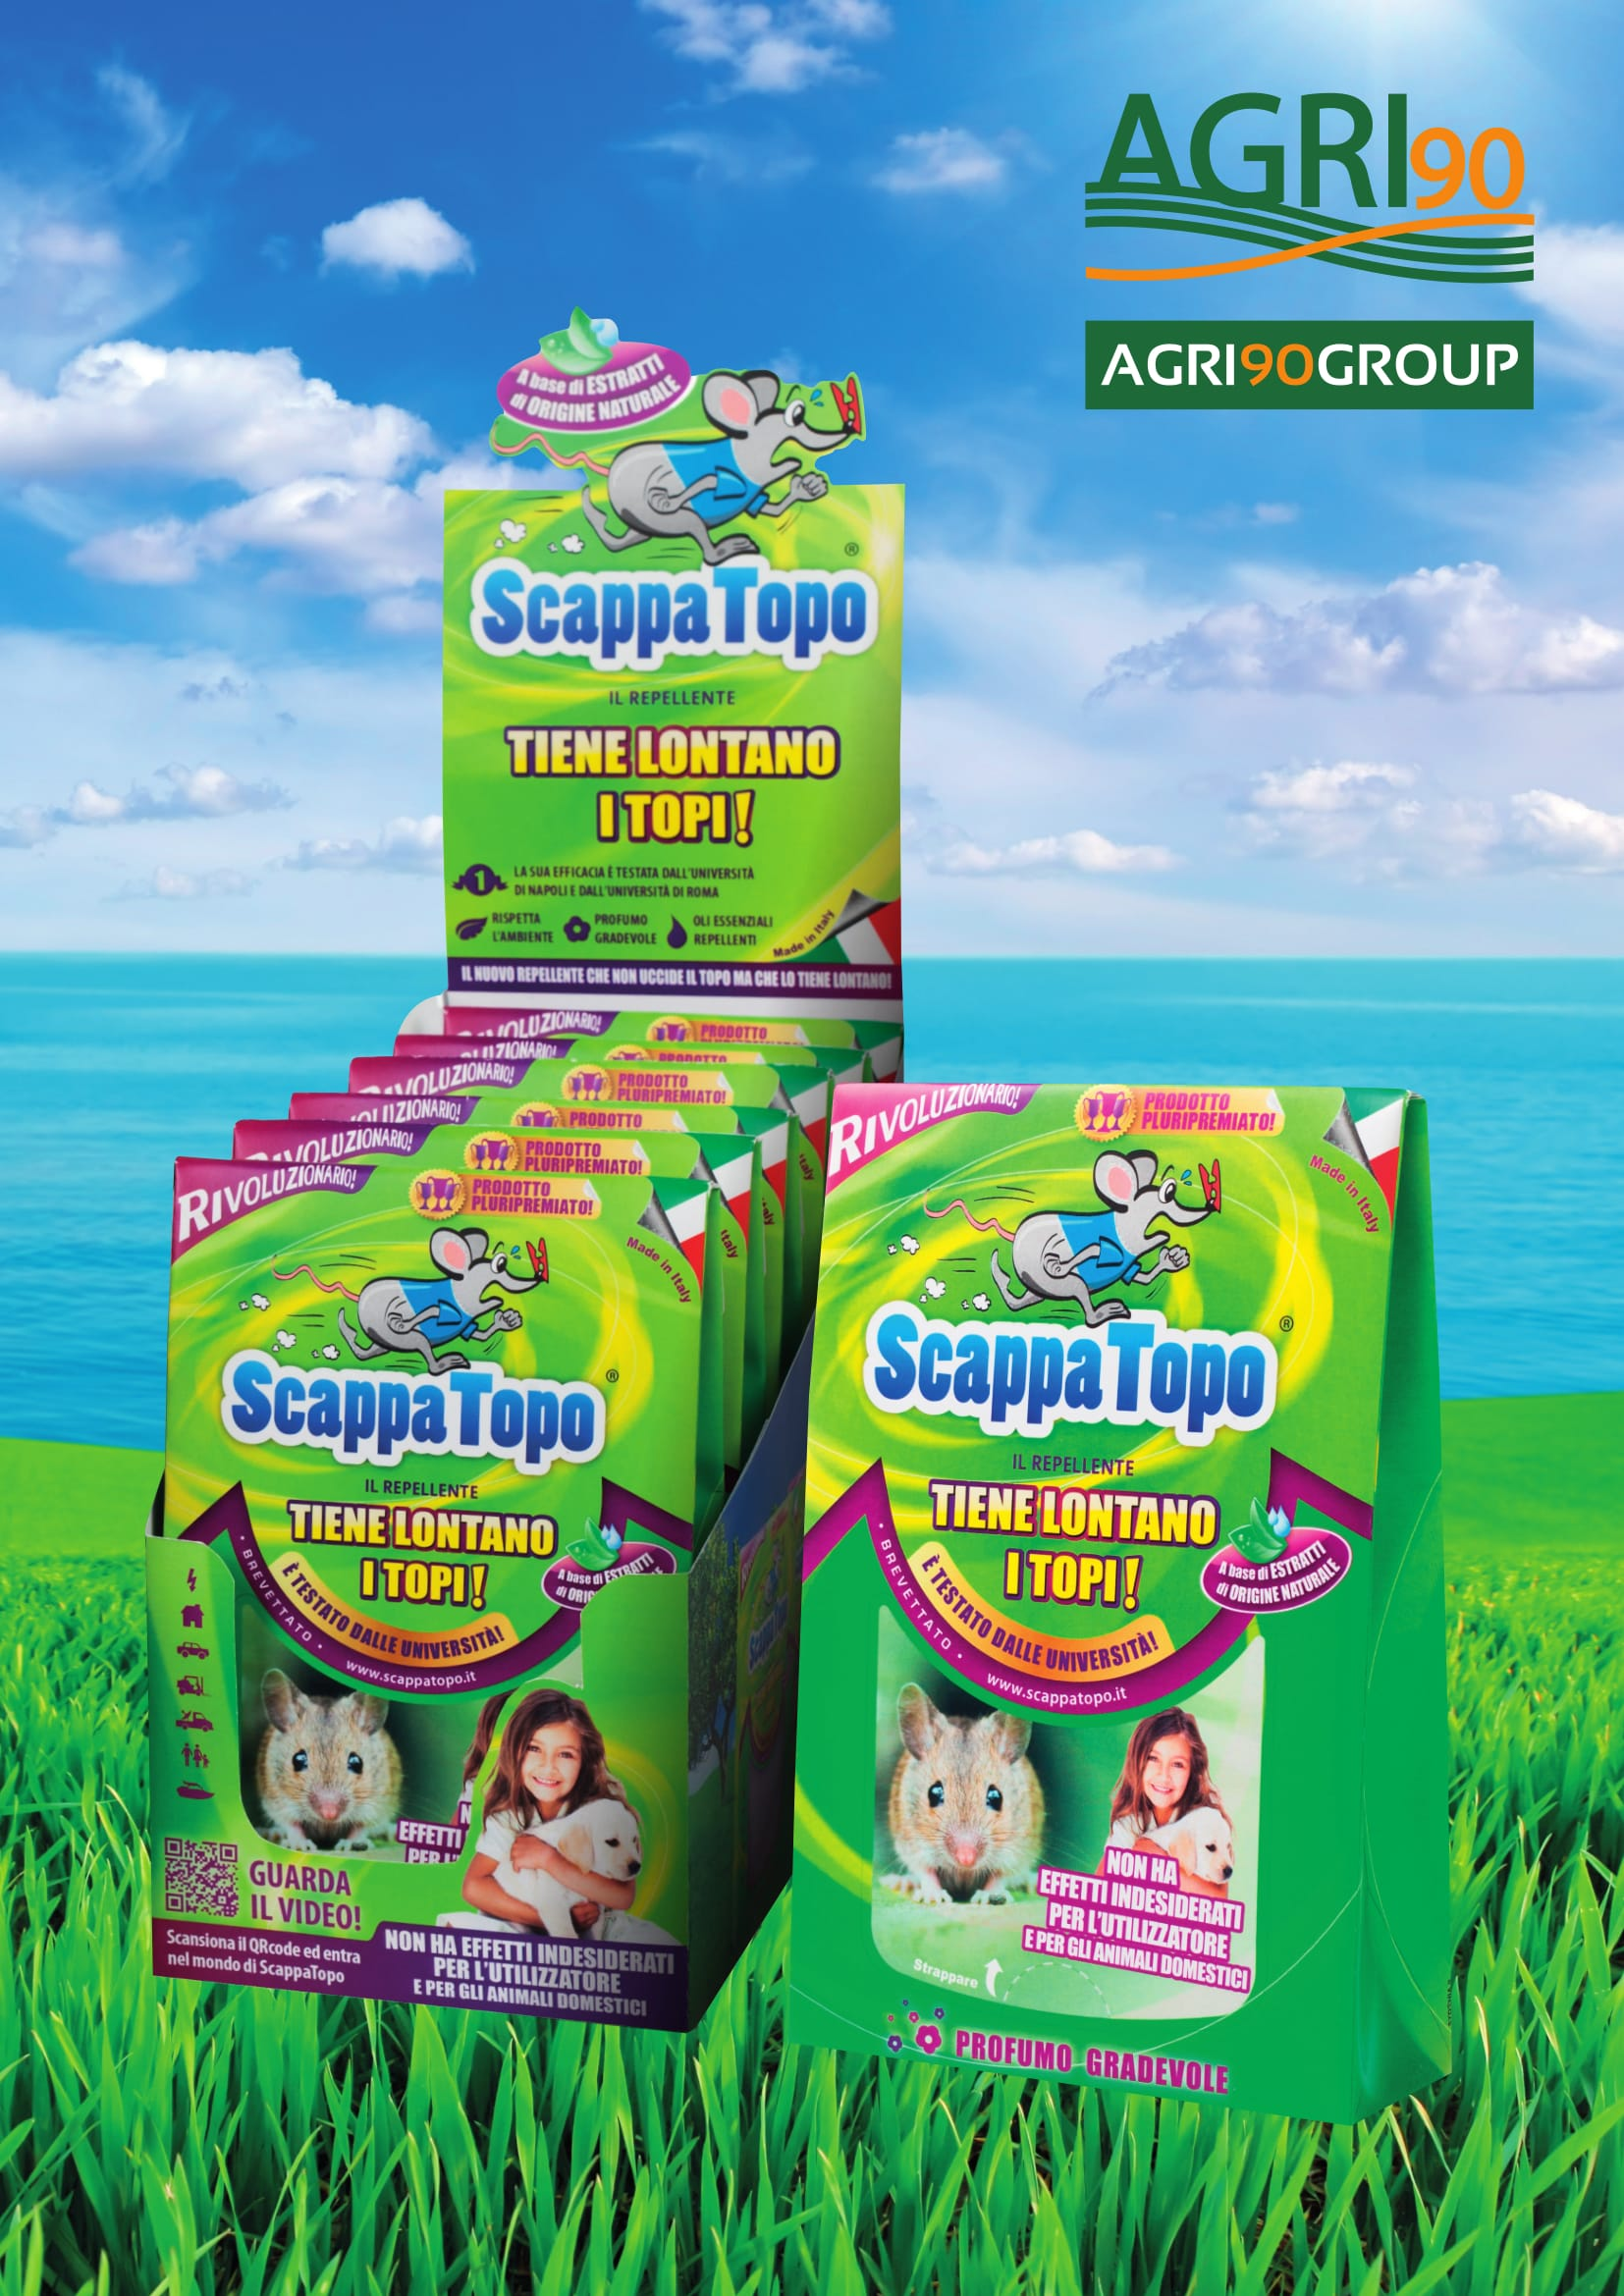 scappatopo agri90group